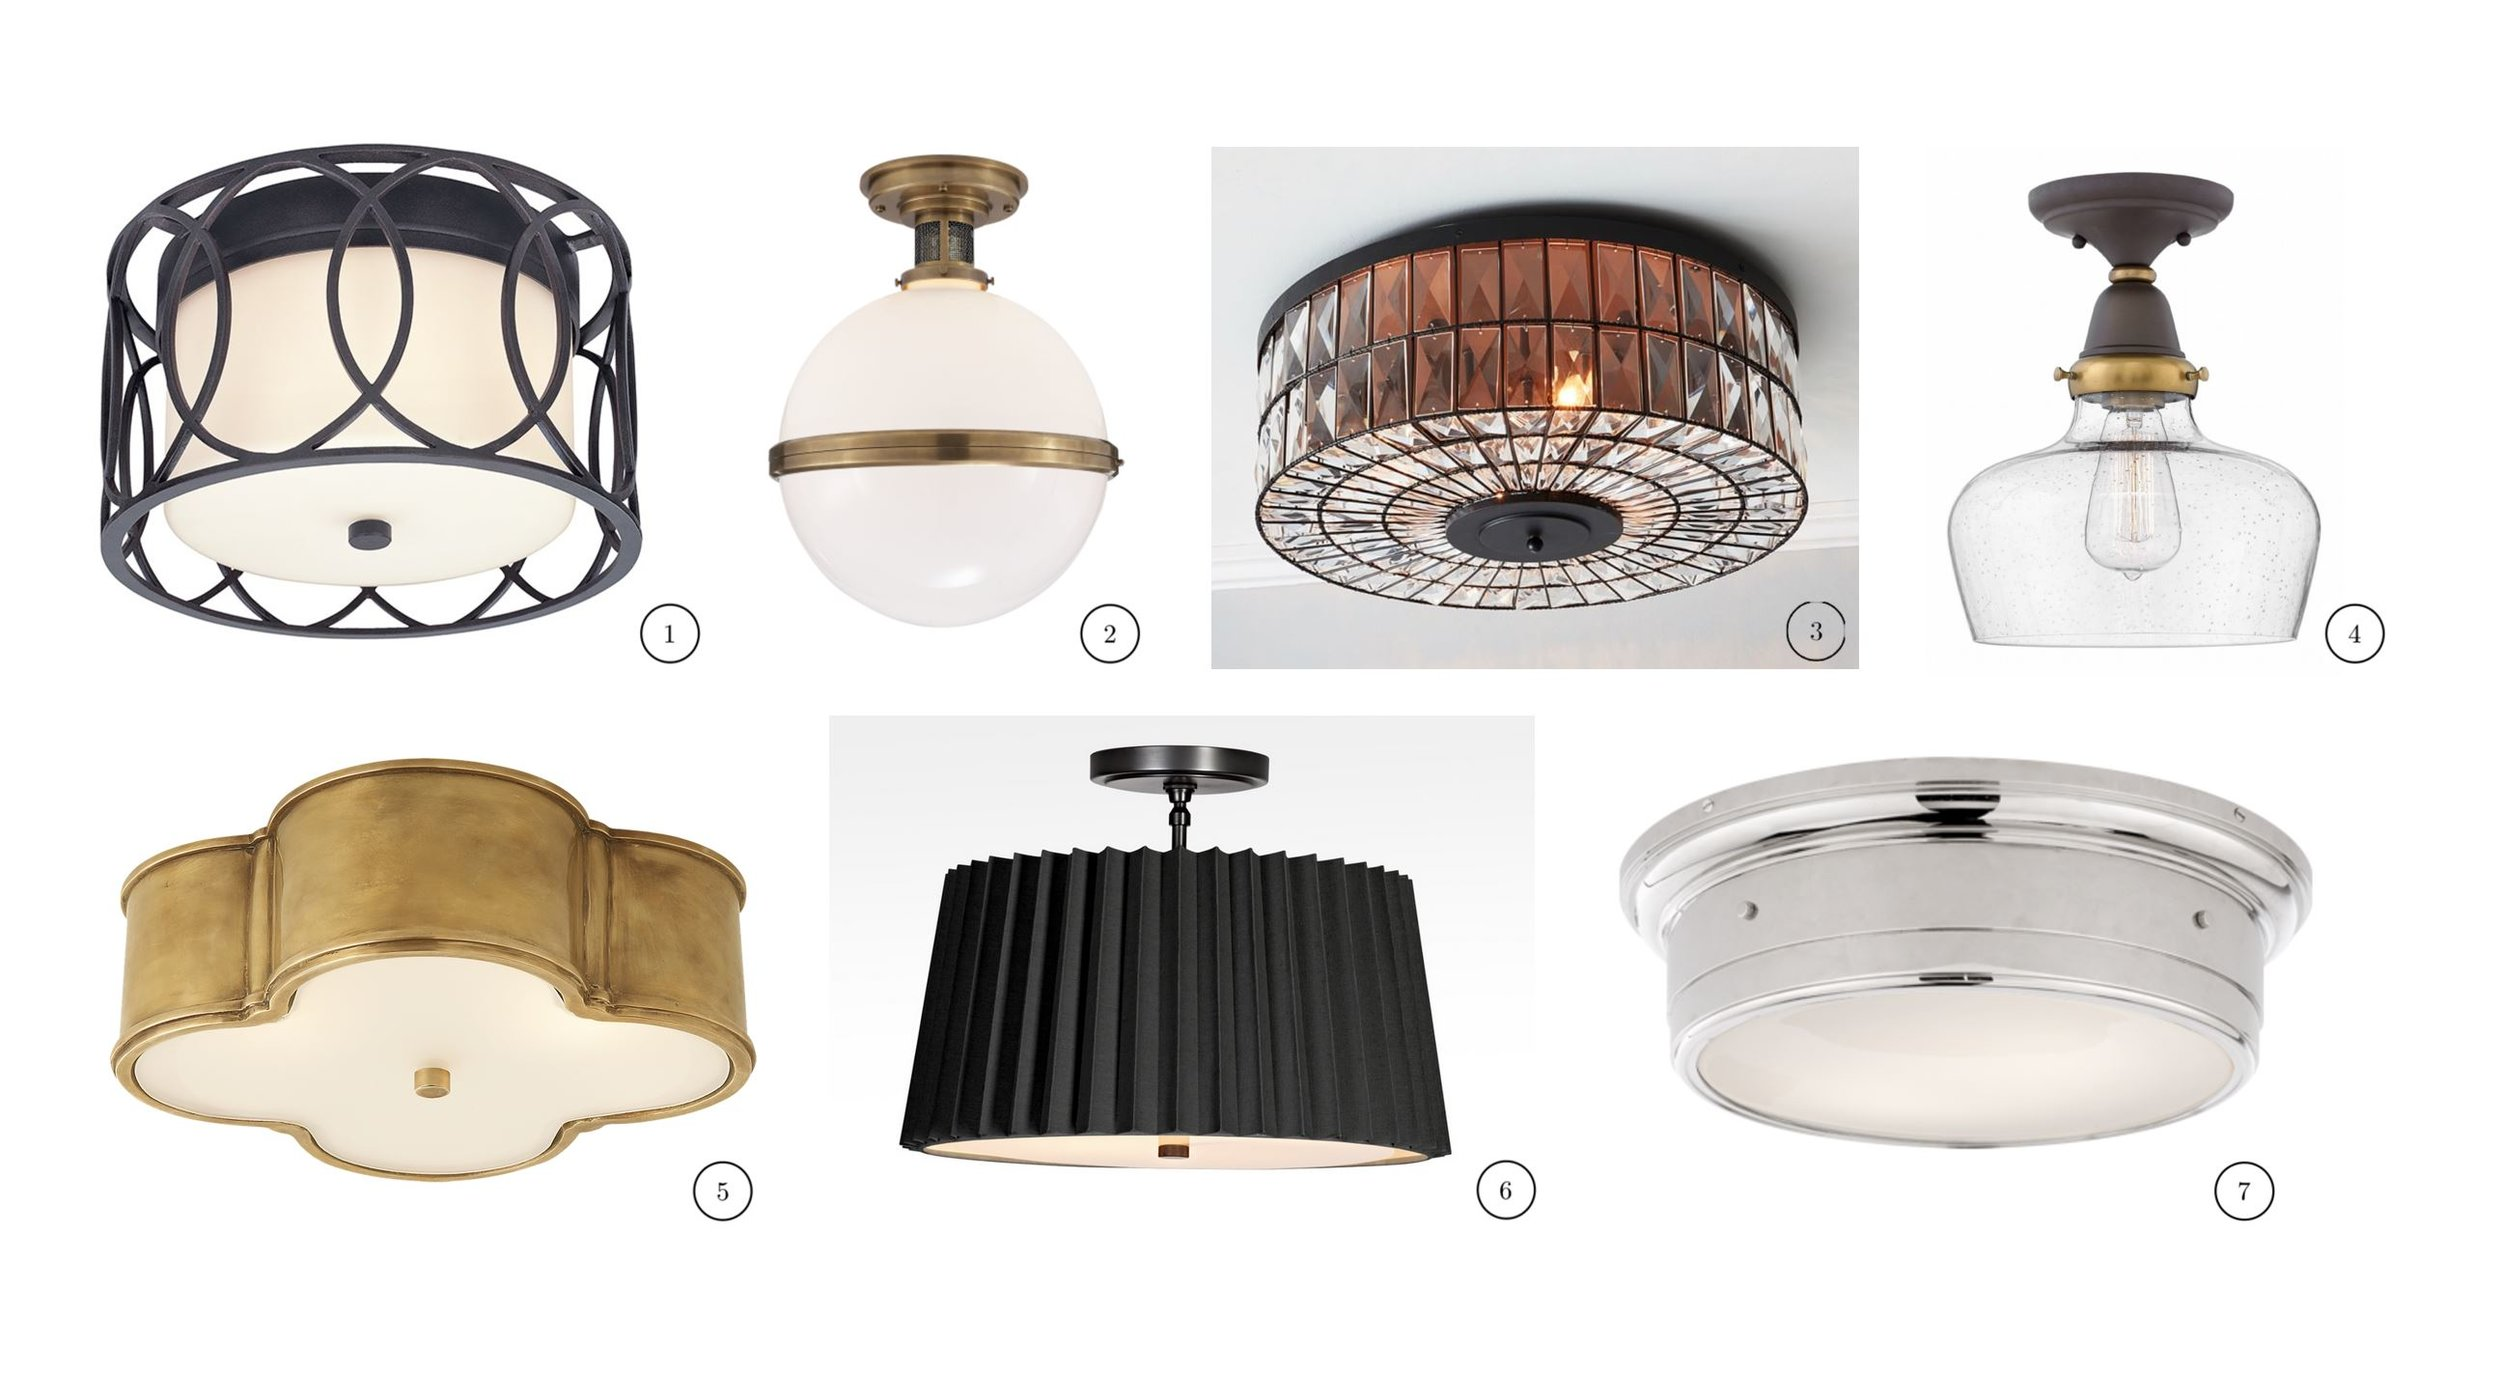 "1. Troy Lighting – Sausalito | 2. Visual Comfort -McCarren Large | 3. Pottery Barn – Adeline Oversized Crystal | 4. Hinkley – Academy | 5. Visual Comfort – Basil Large | 6. Rejuvenation – Barton 18"" Pleated Drum 